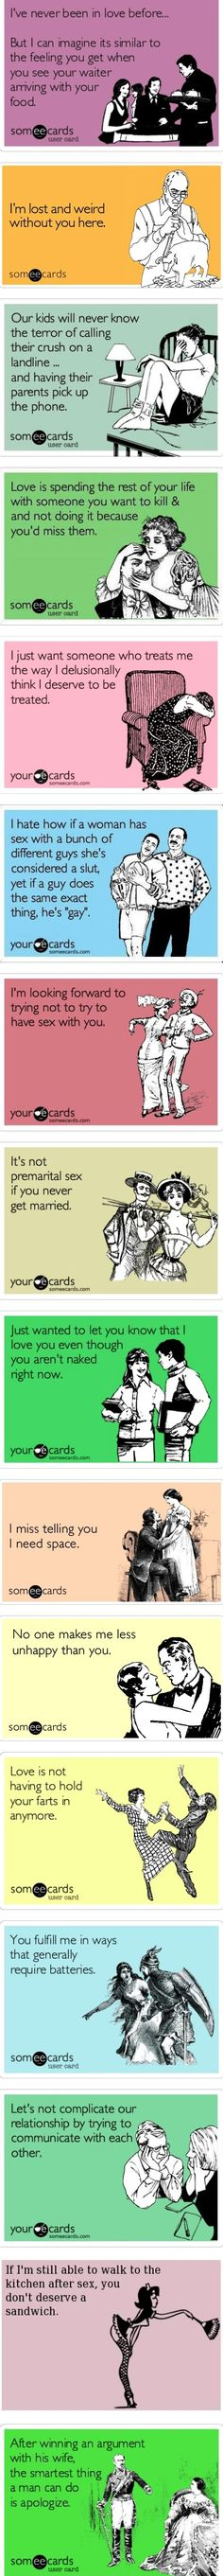 The Best Love Ecards Ever